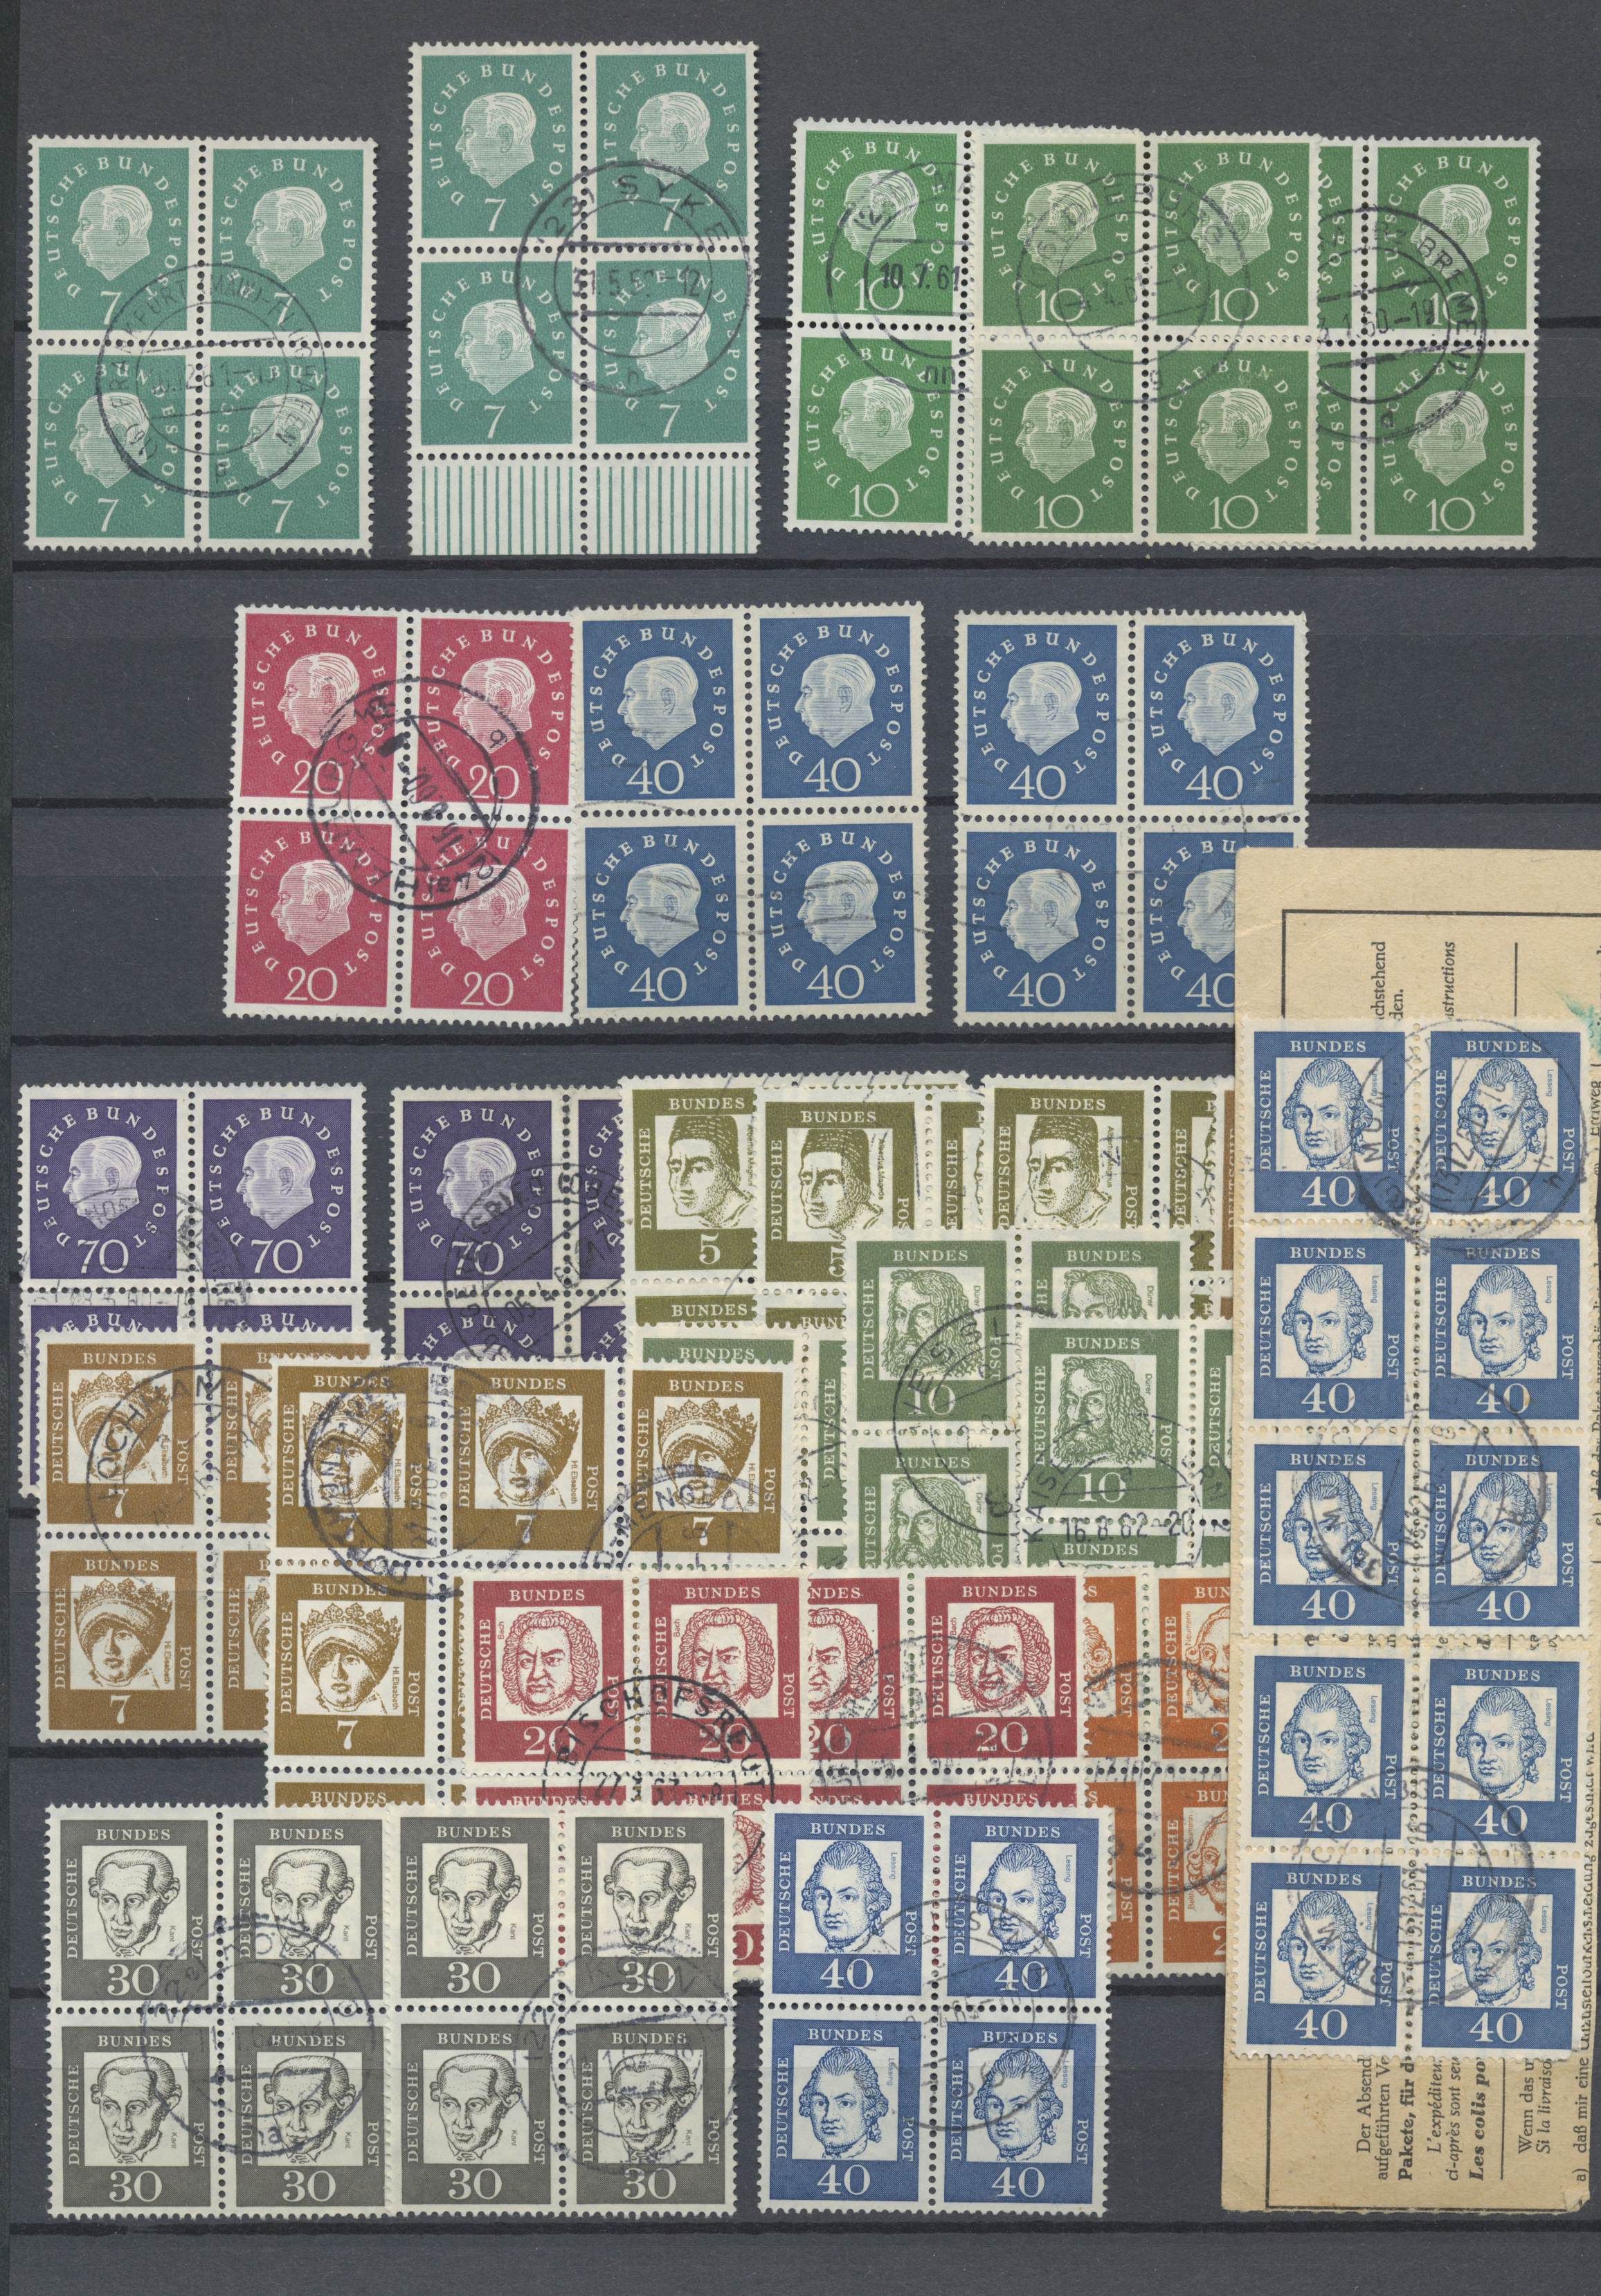 Lot 33563 - bundesrepublik deutschland  -  Auktionshaus Christoph Gärtner GmbH & Co. KG Sale #45- Collections Germany